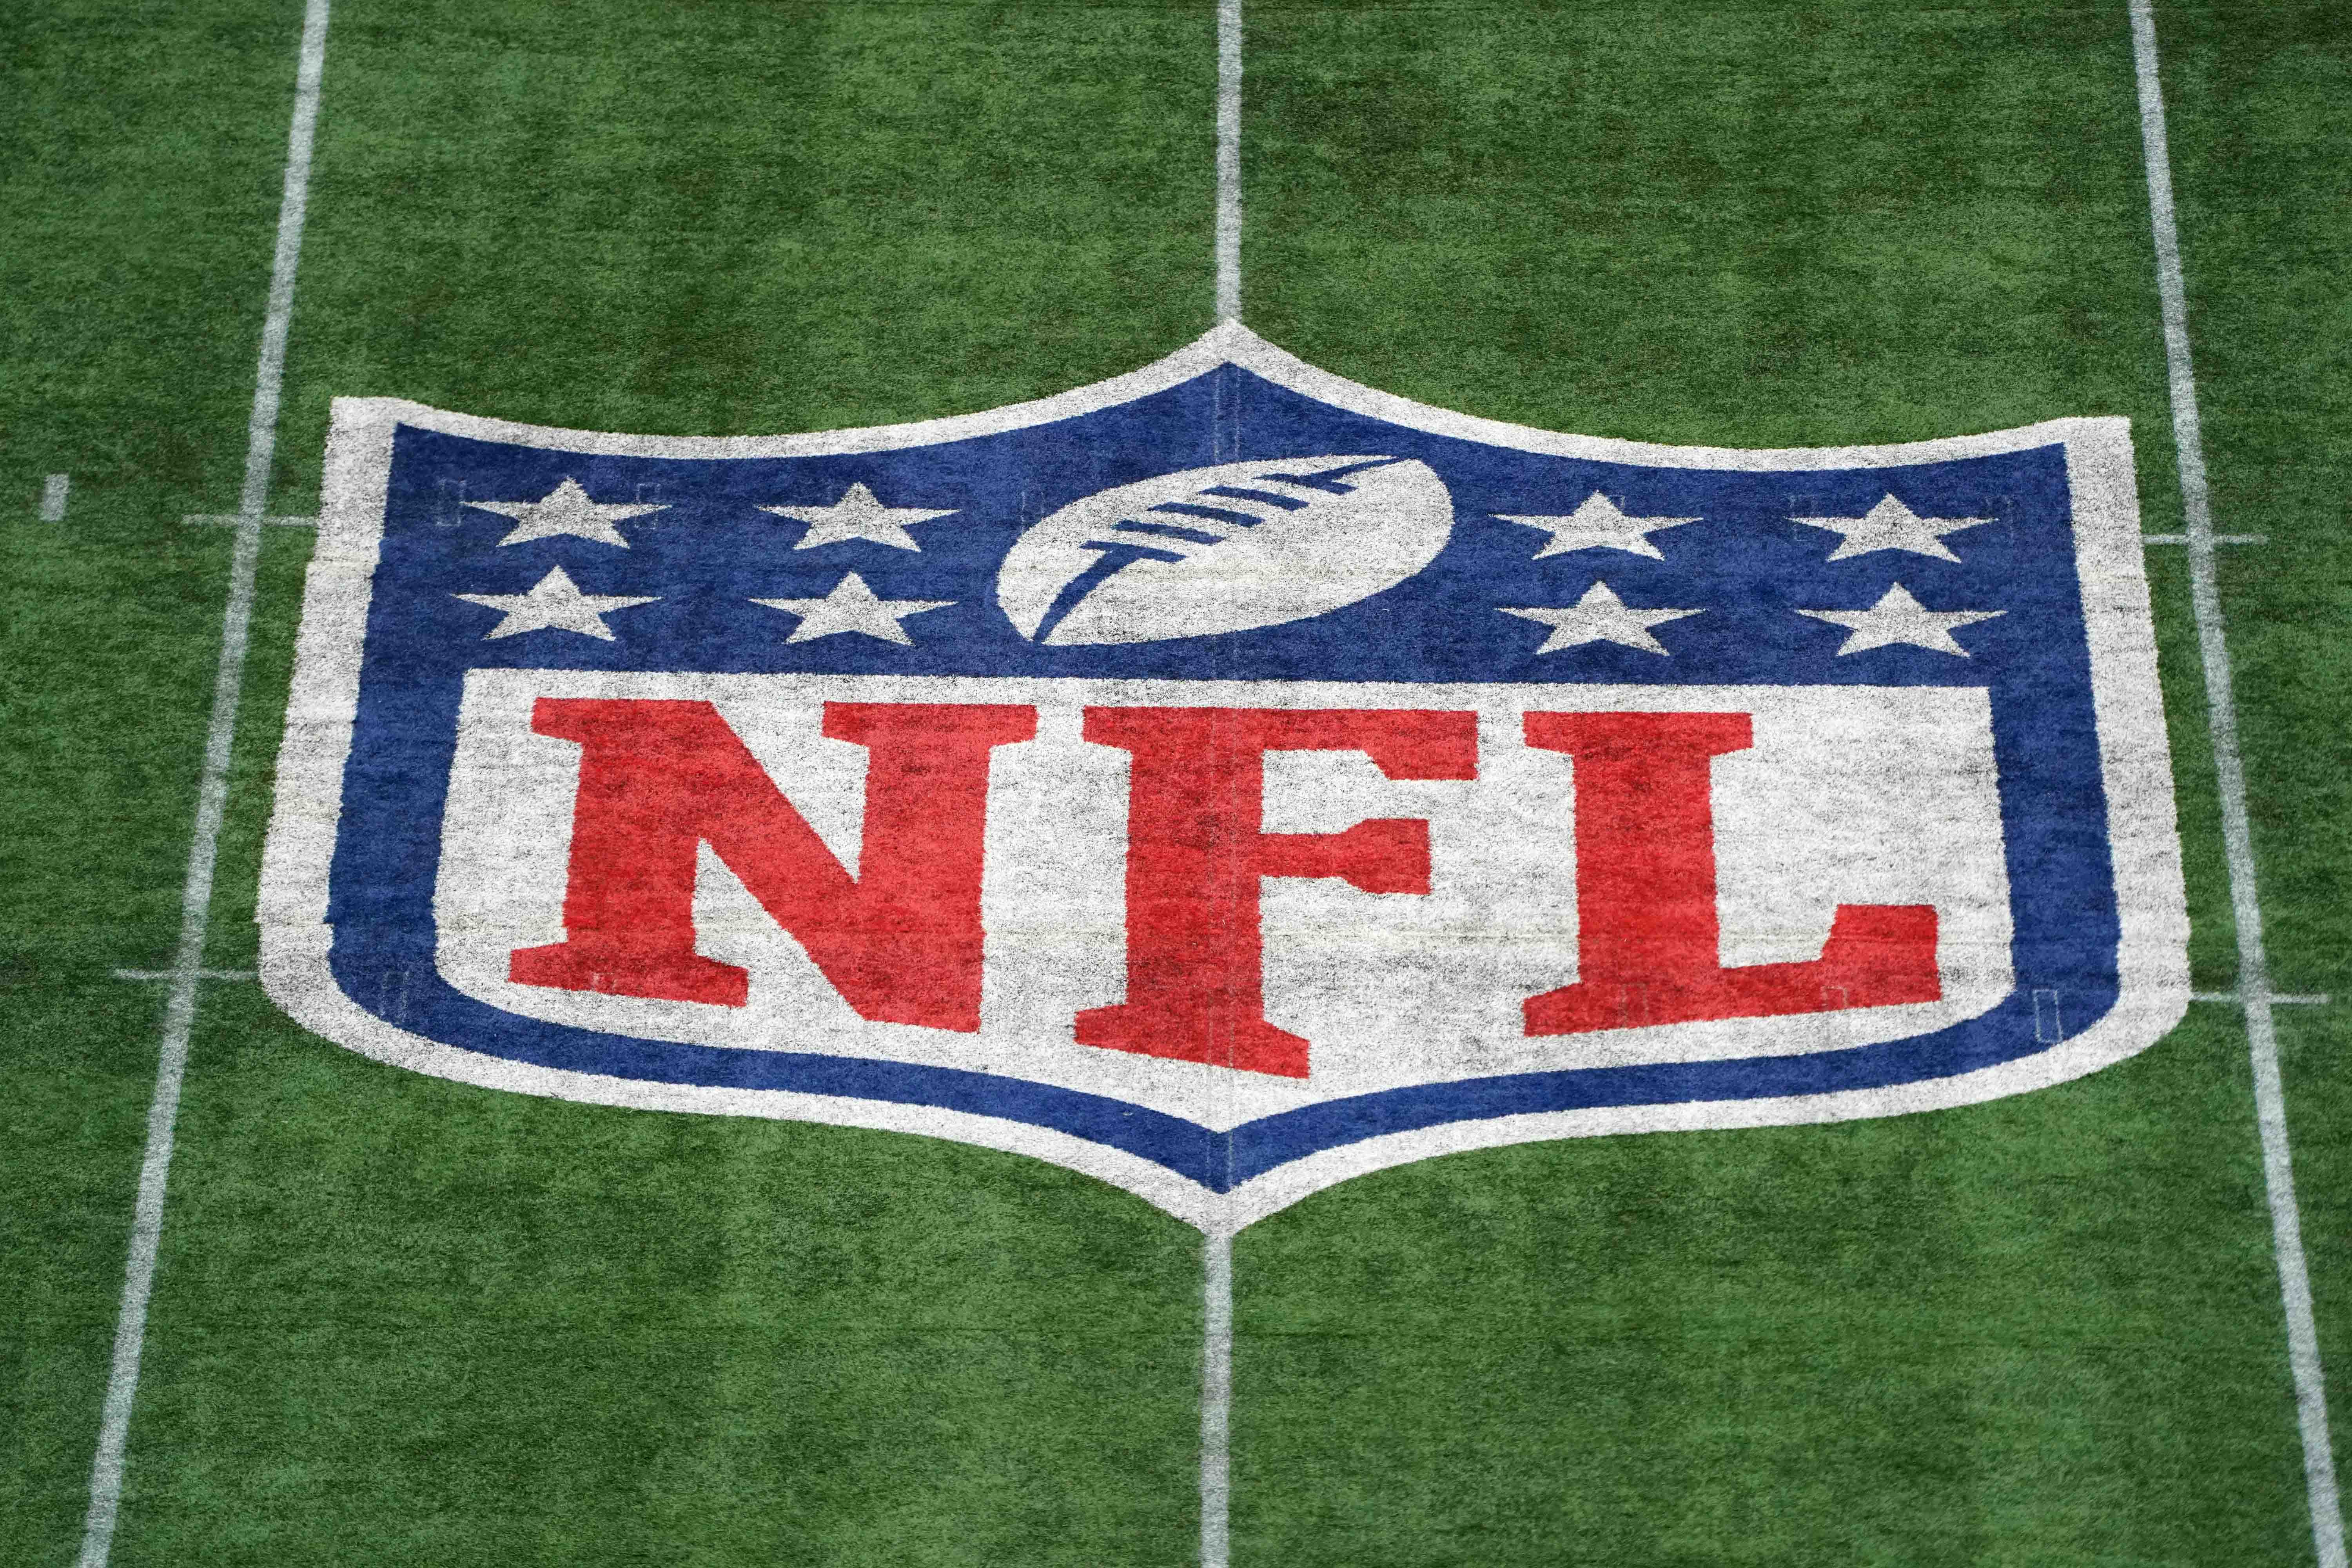 Opinion: NFL should apologize for using disgraceful practice of race-norming